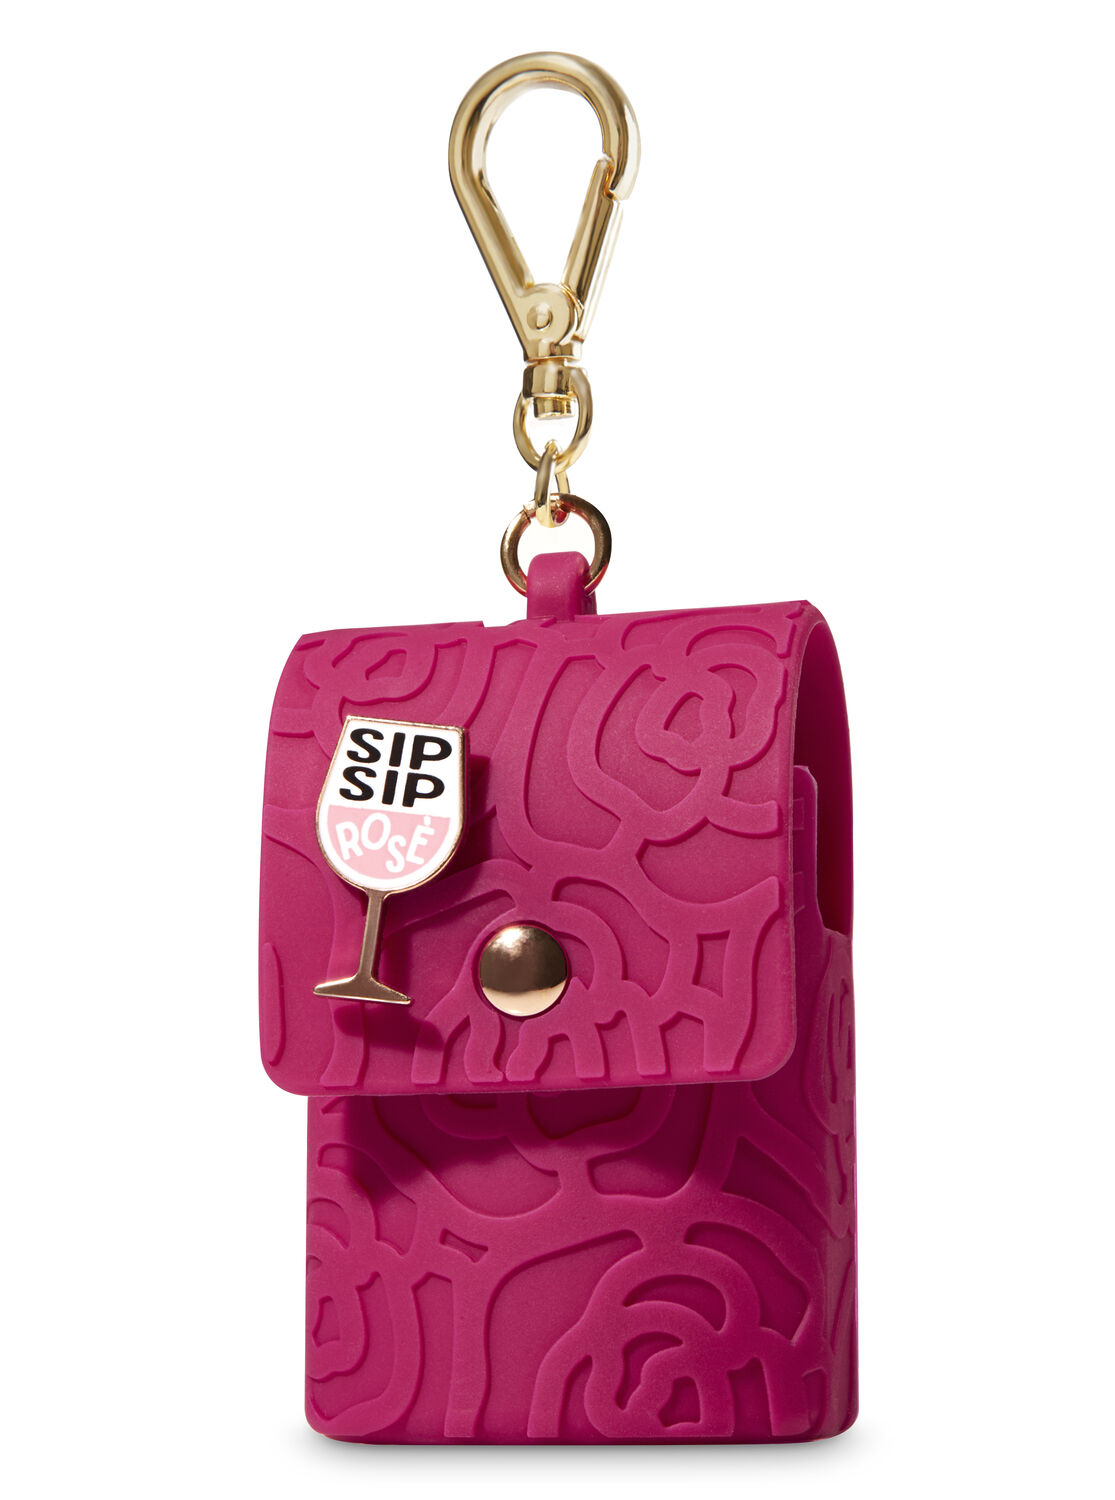 Sip Sip Rose Pocketbac Holder Bath Body Works Bath Body